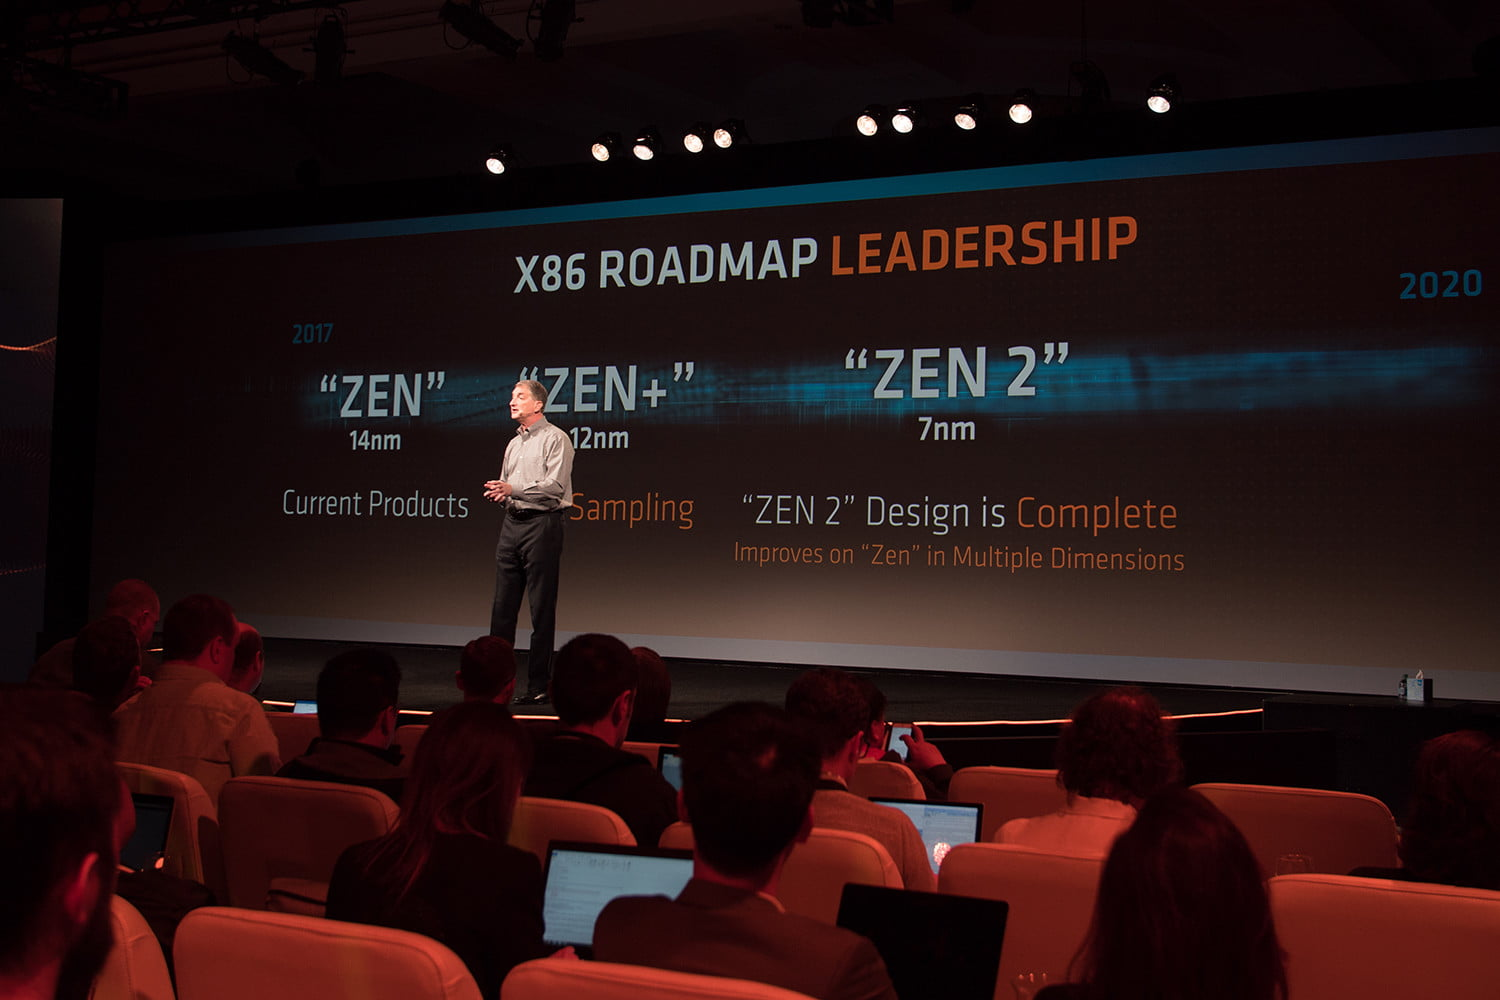 In 2019 Amd S 7nm Cpus And Gpus Could Change Everything Digital Trends